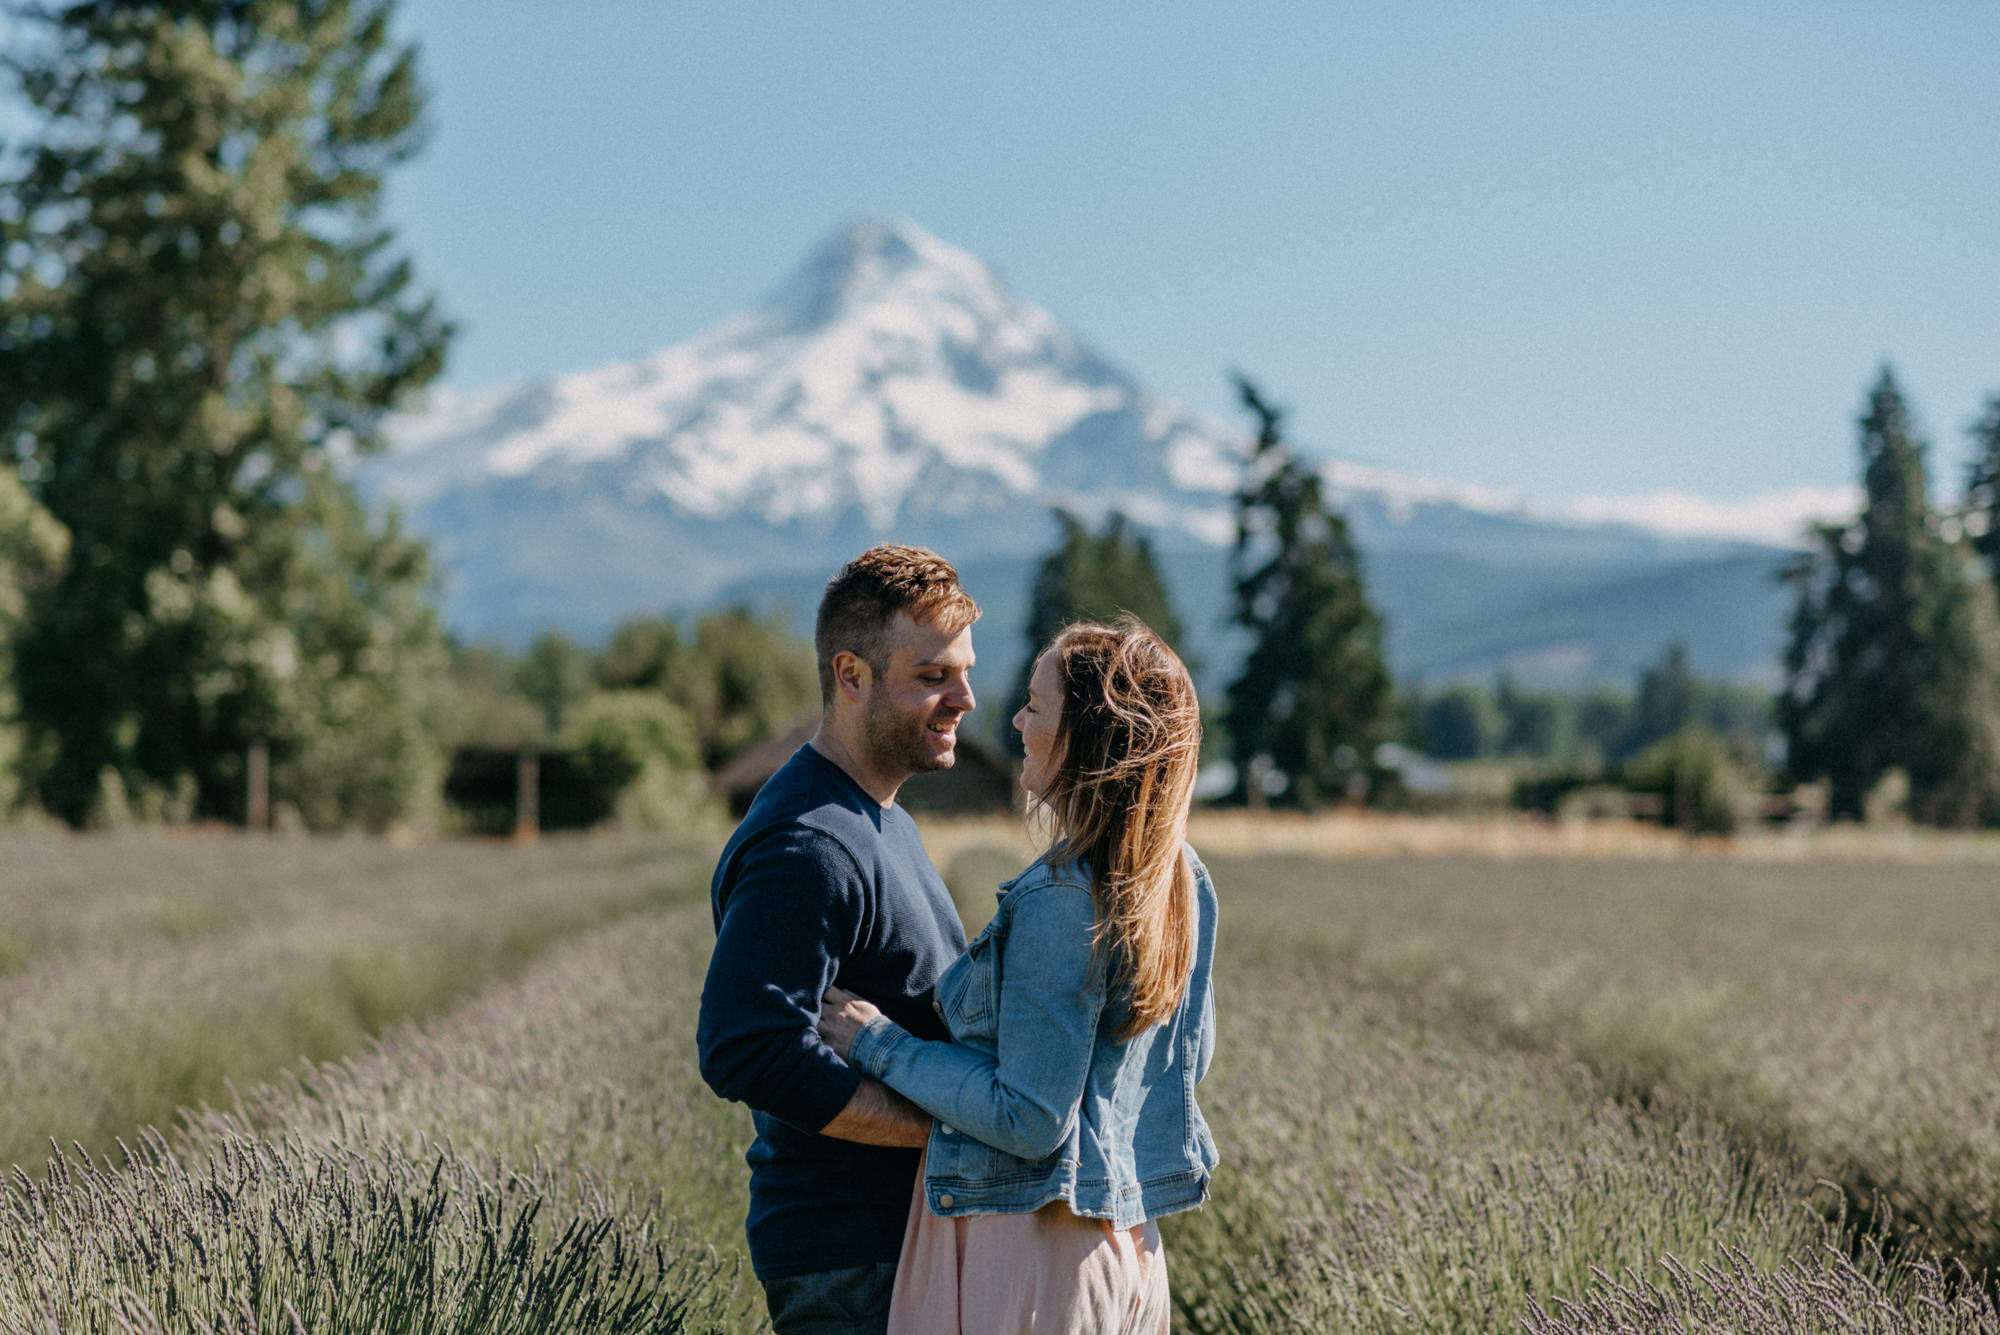 25-Mt-hood-lavender-farms-engagment-couple-summer-7666.jpg